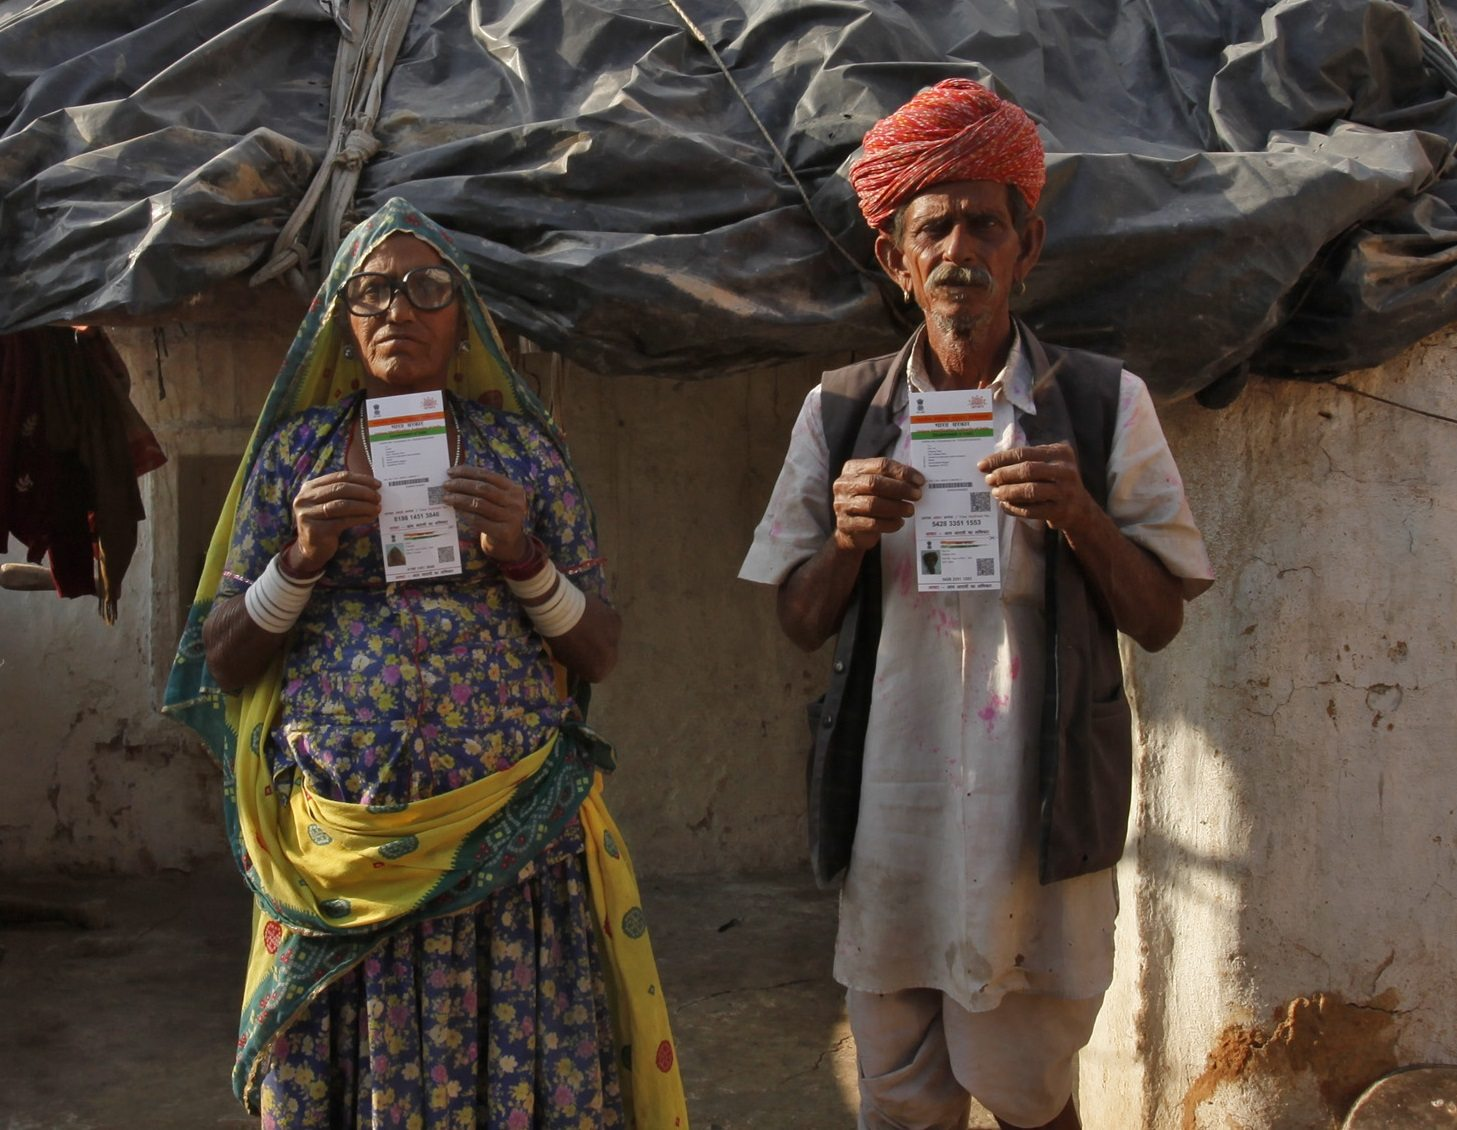 Ghewar Ram (R), 55, and his wife Champa Devi, 54, display their Unique Identification (UID) cards outside their hut at Merta district in the desert Indian state of Rajasthan February 21, 2013. In a more ambitious version of programmes that have slashed poverty in Brazil and Mexico, the Indian government has begun to use the UID database, known as Aadhaar, to make direct cash transfers to the poor, in an attempt to cut out frauds who siphon billions of dollars from welfare schemes. Picture taken February 21, 2013. REUTERS/Mansi Thapliyal (INDIA - Tags: SOCIETY POVERTY SCIENCE TECHNOLOGY BUSINESS TPX IMAGES OF THE DAY) - RTR3EDRN